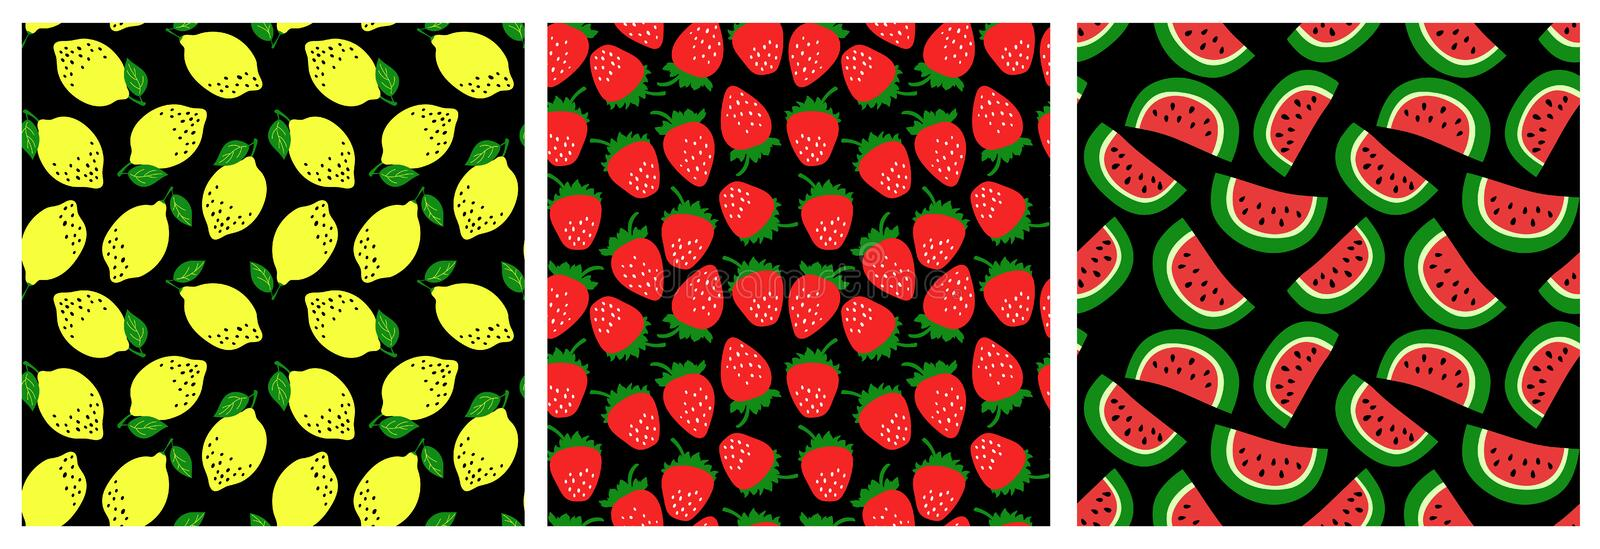 Watermelon, strawberry, lemon. Fruit seamless pattern set. Fashion clothing design. Food print for dress, skirt, linens or curtain stock illustration